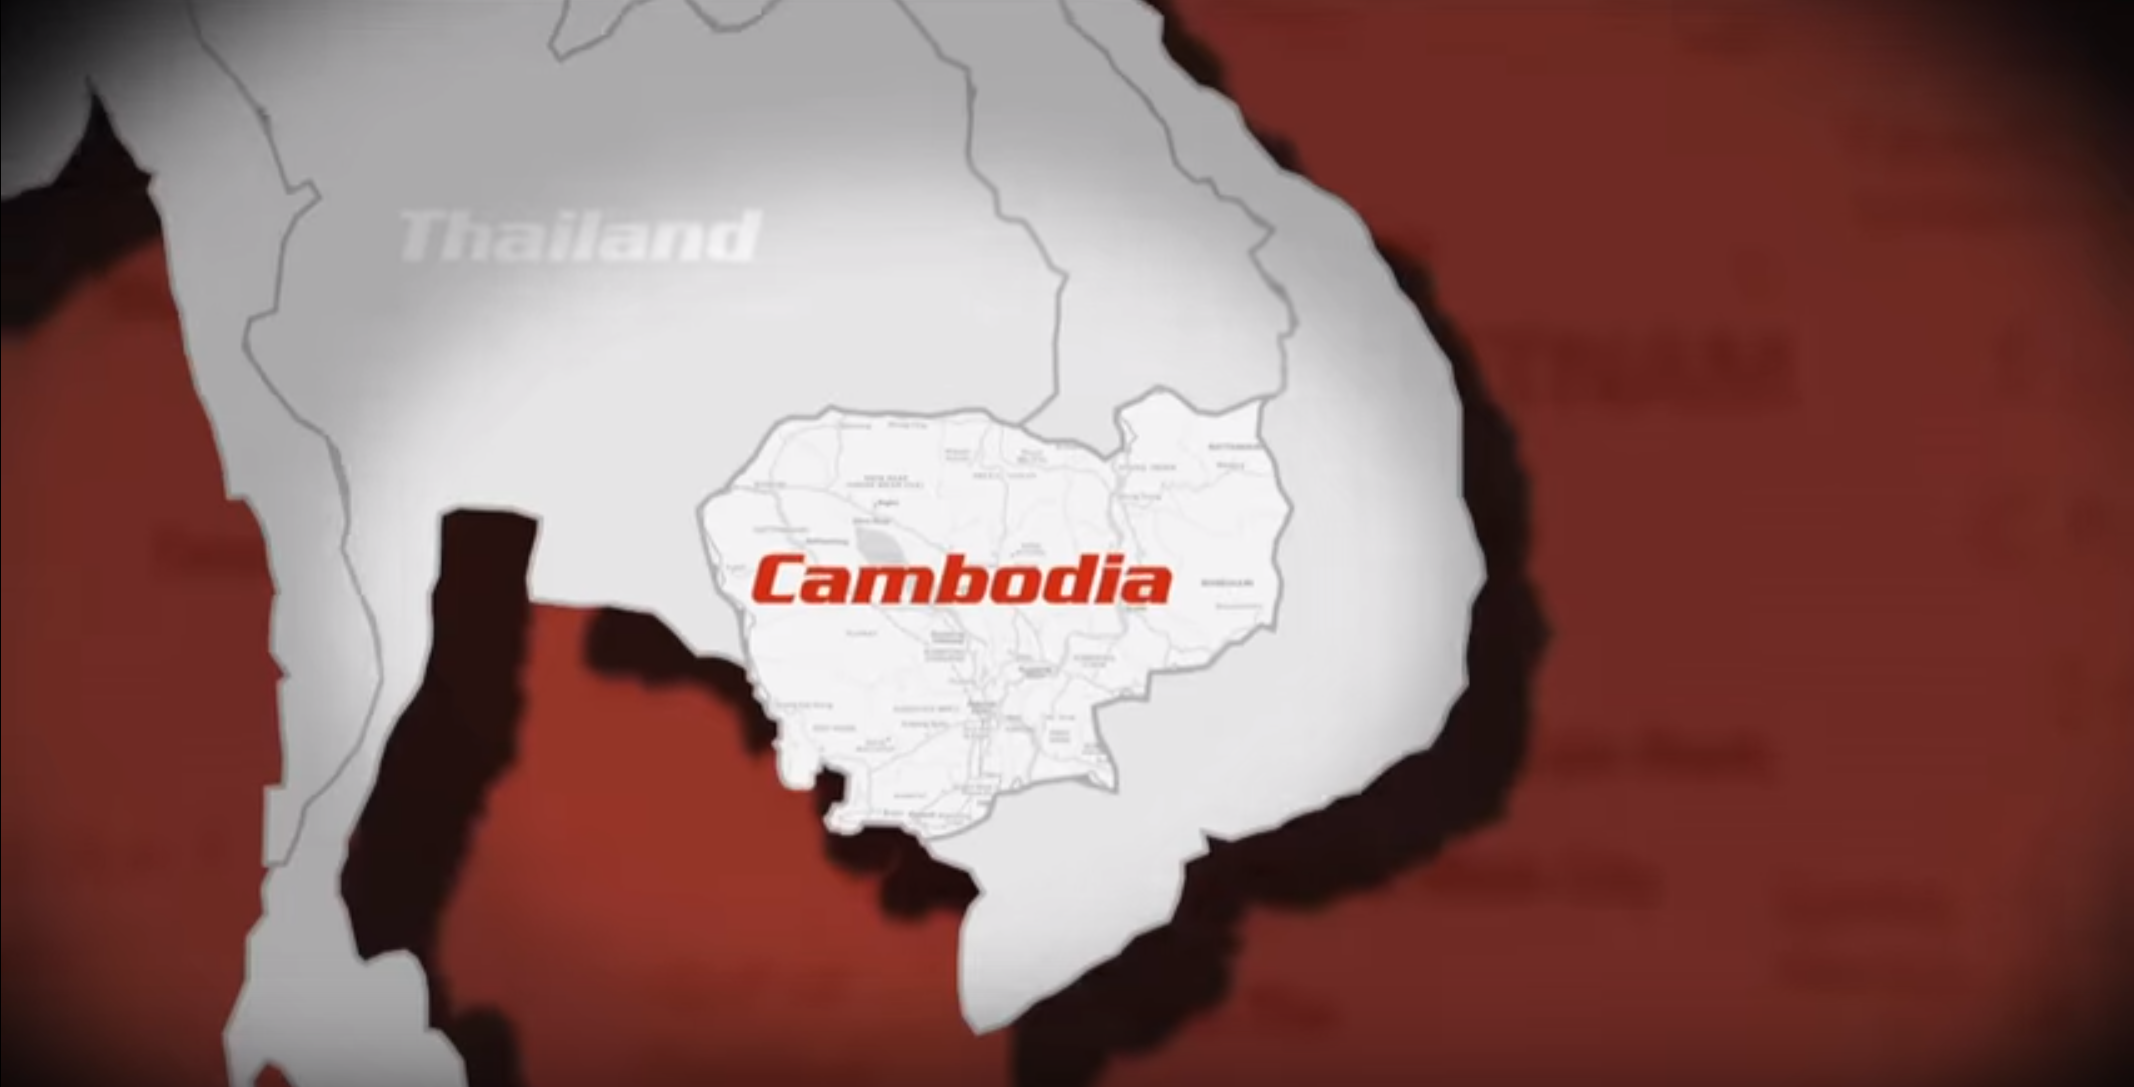 Cambodia Motorcycle Adventure   Trailer   Never Stop Riding   YouTube